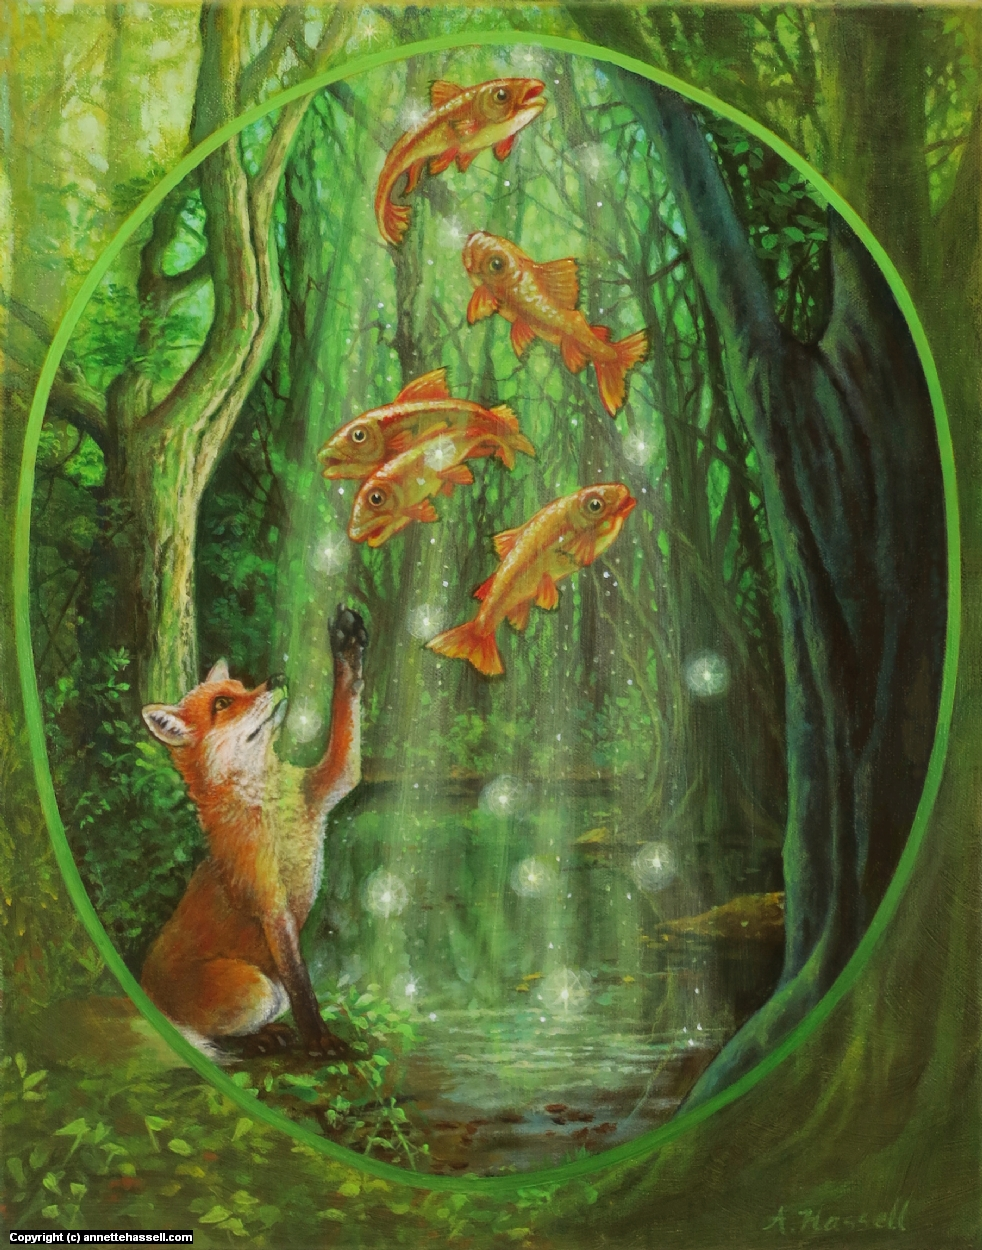 Forest Waters Artwork by Annette Hassell